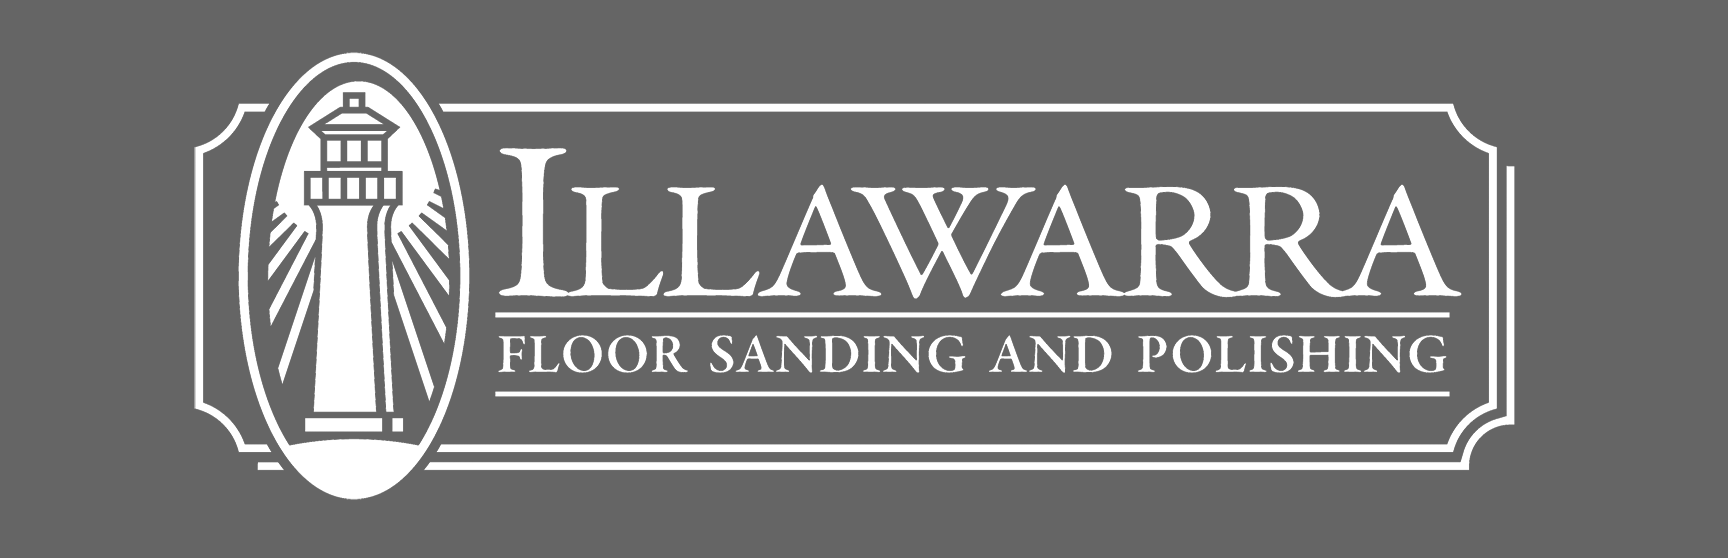 Illawarra Floor Sanding and Polishing